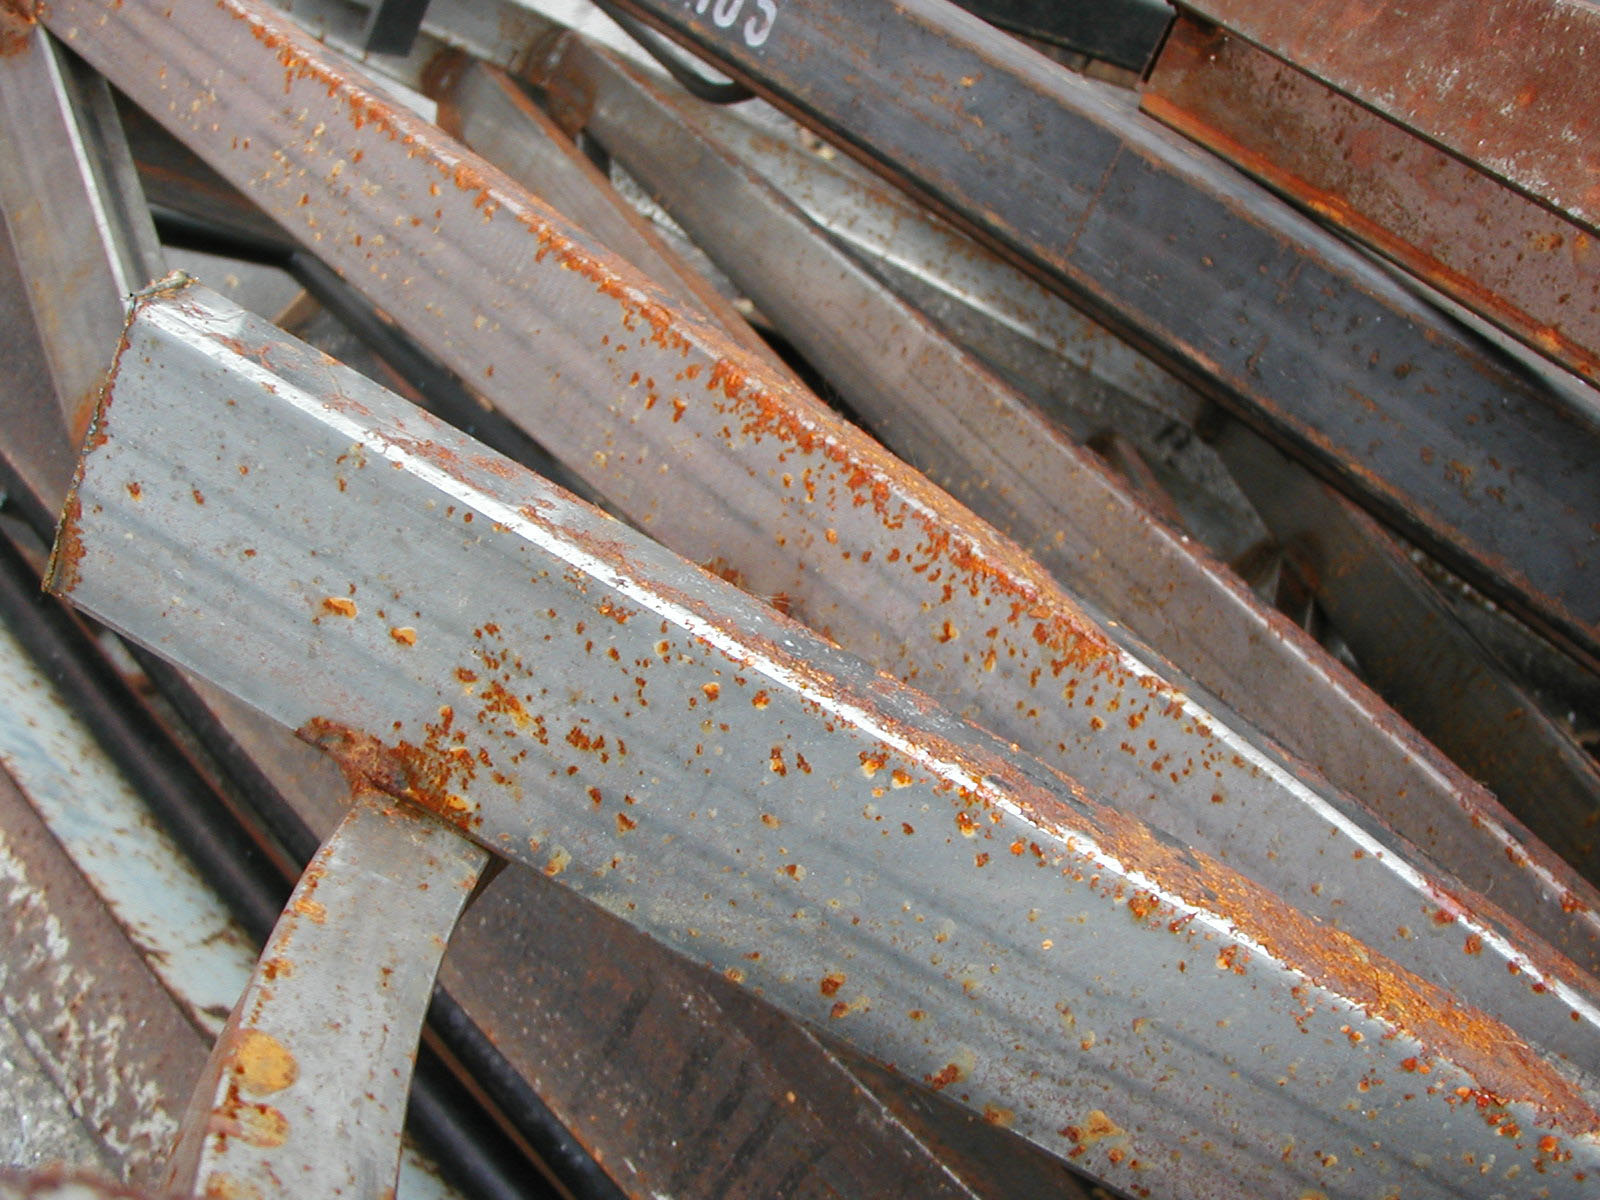 Rusted metal bars photo